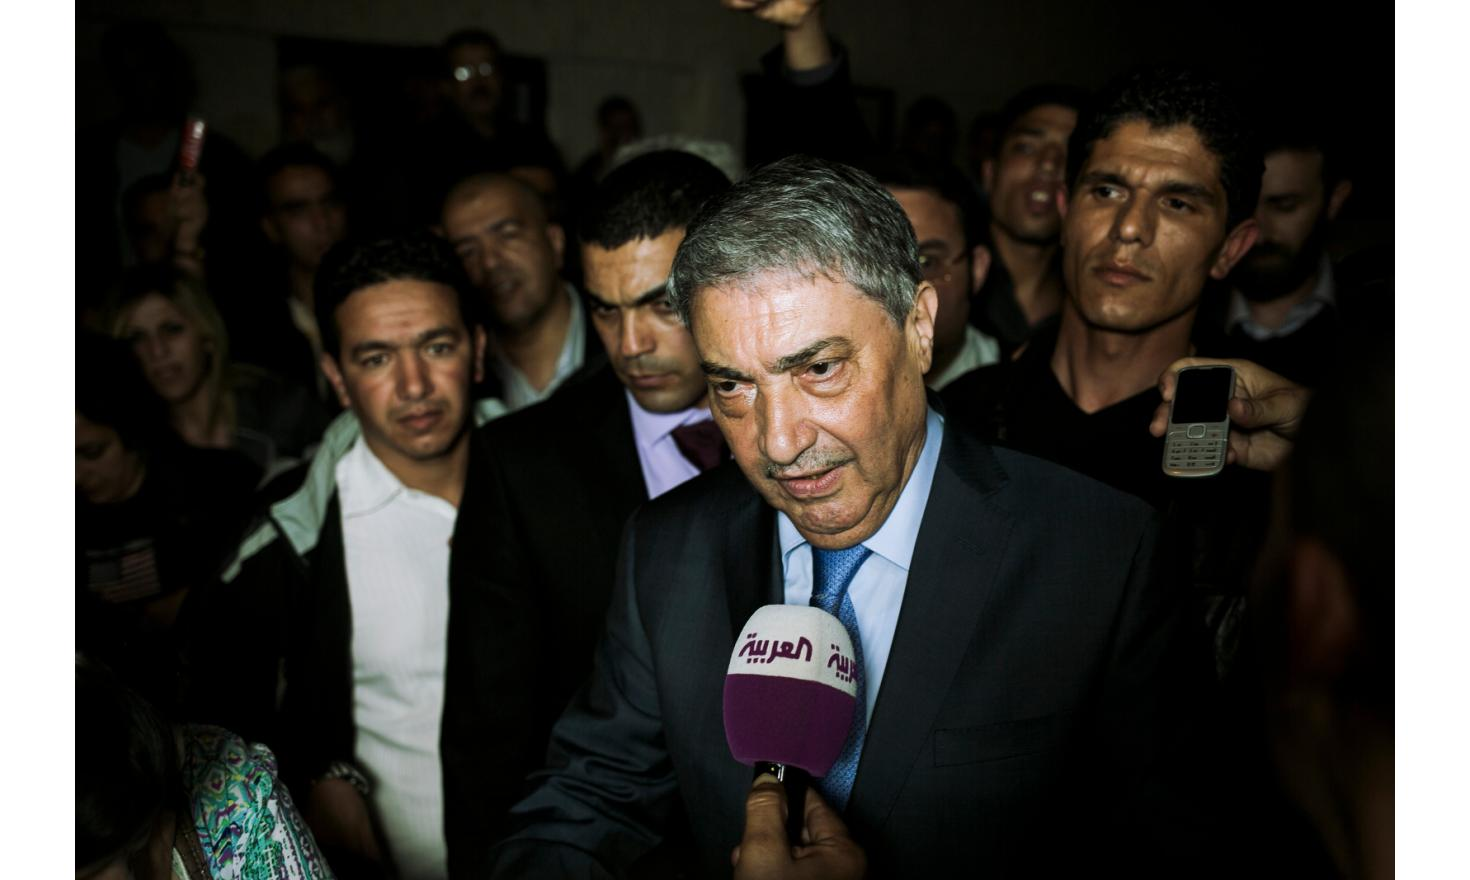 Ali Benflis speaking with journalists after his defeat